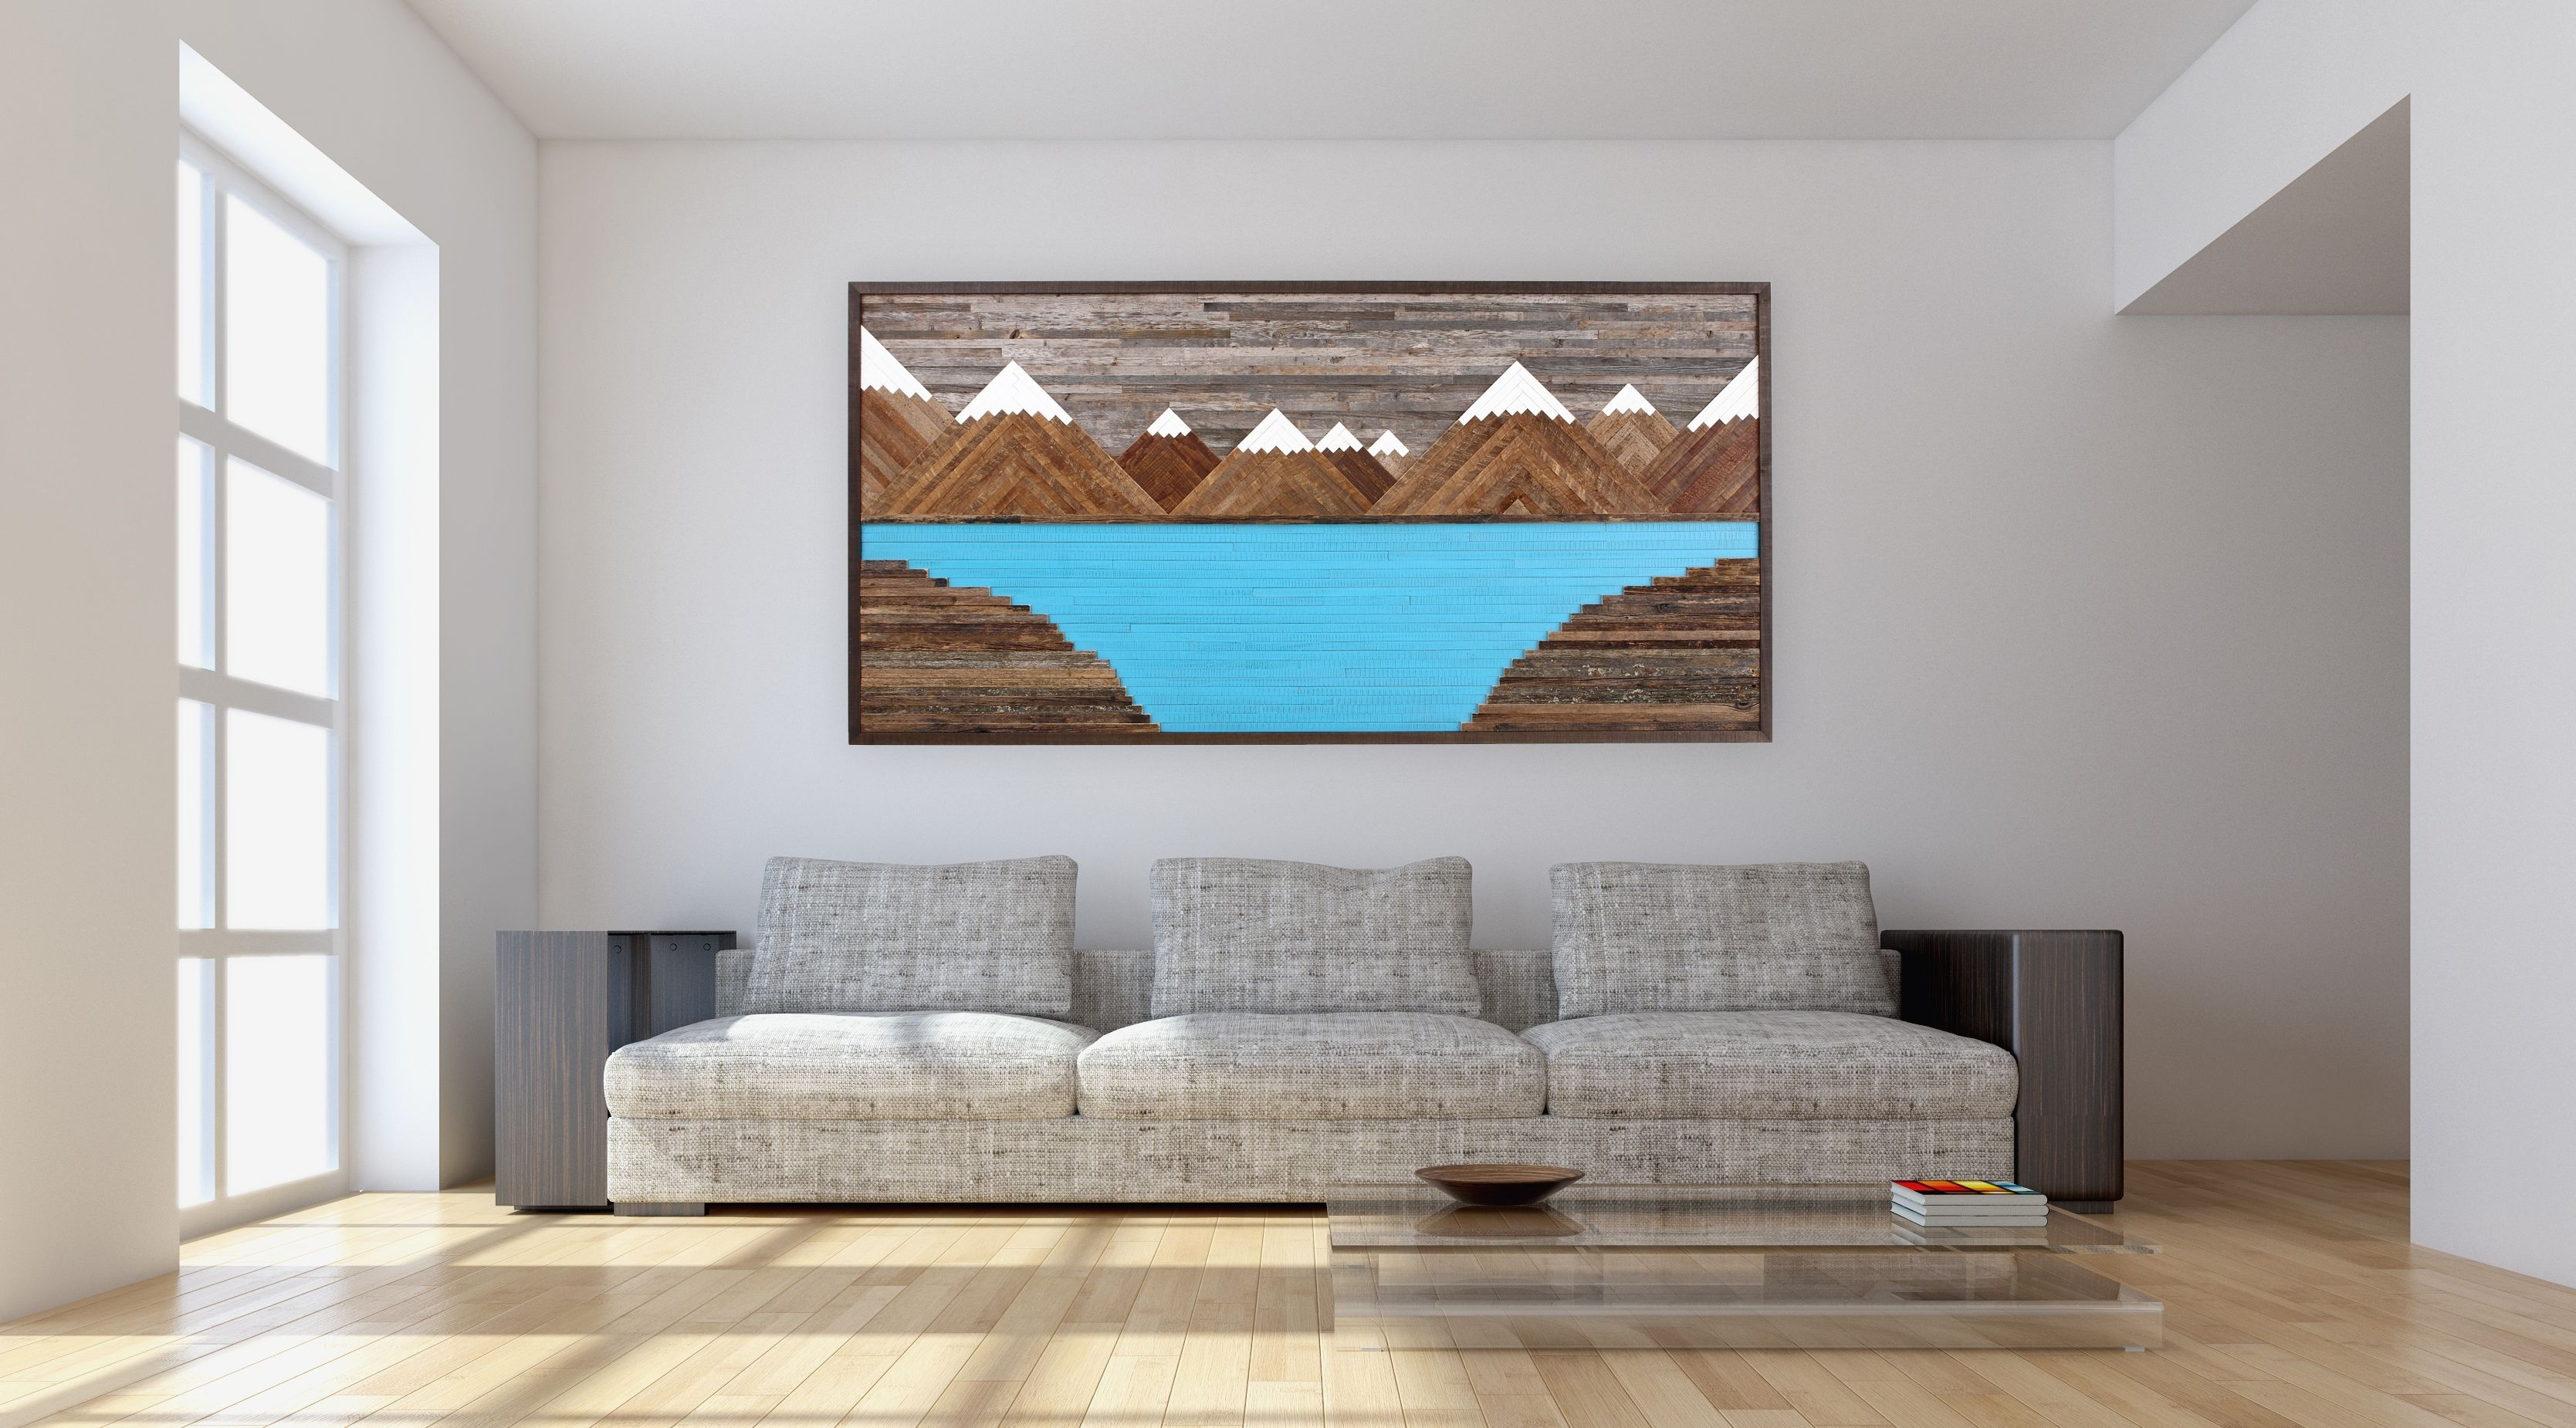 Handmade Glacier Mountain Landscape, Wood Wall Art, Reclaimed Wood With Most Recently Released Rustic Wall Art (View 8 of 15)